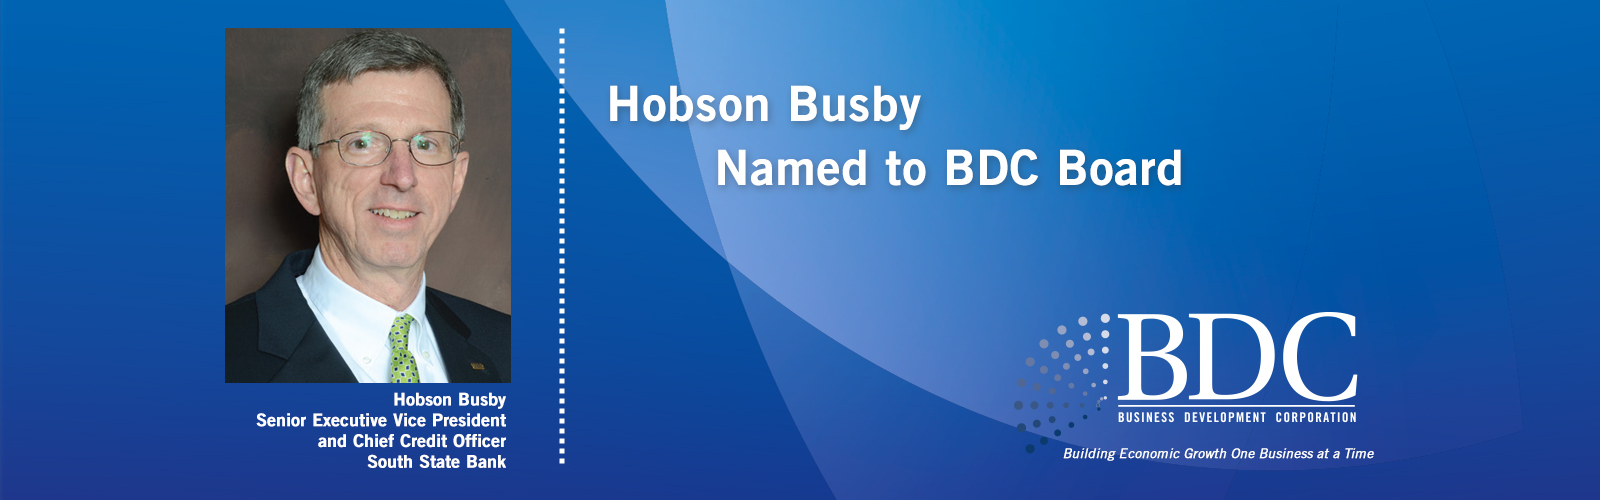 Hobson Busby Named to BDC Board